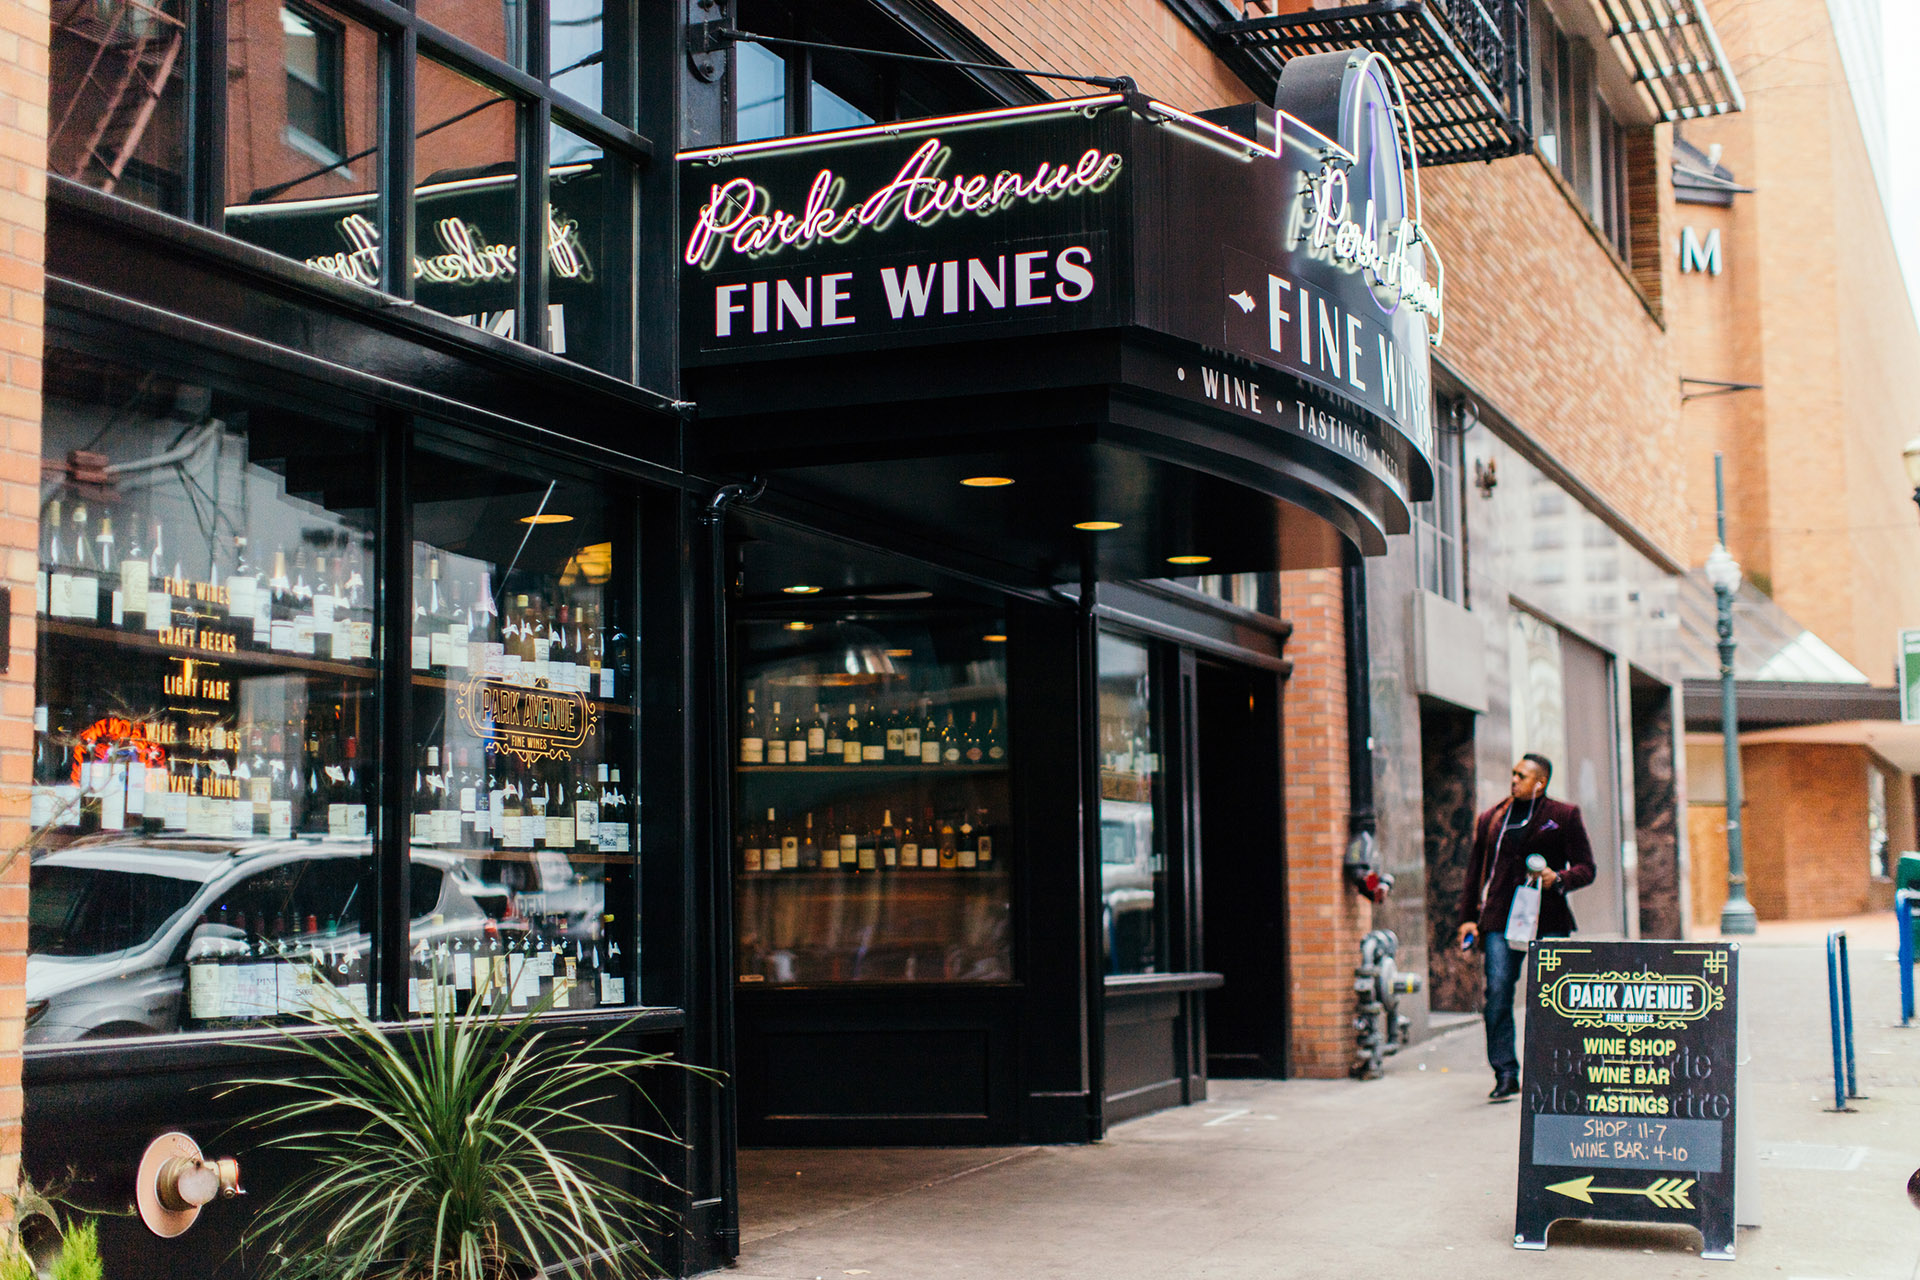 Housed in a historic jazz club is Park Avenue Fine Wines, Portland, Oregon / Photo by Matt Gonzalez